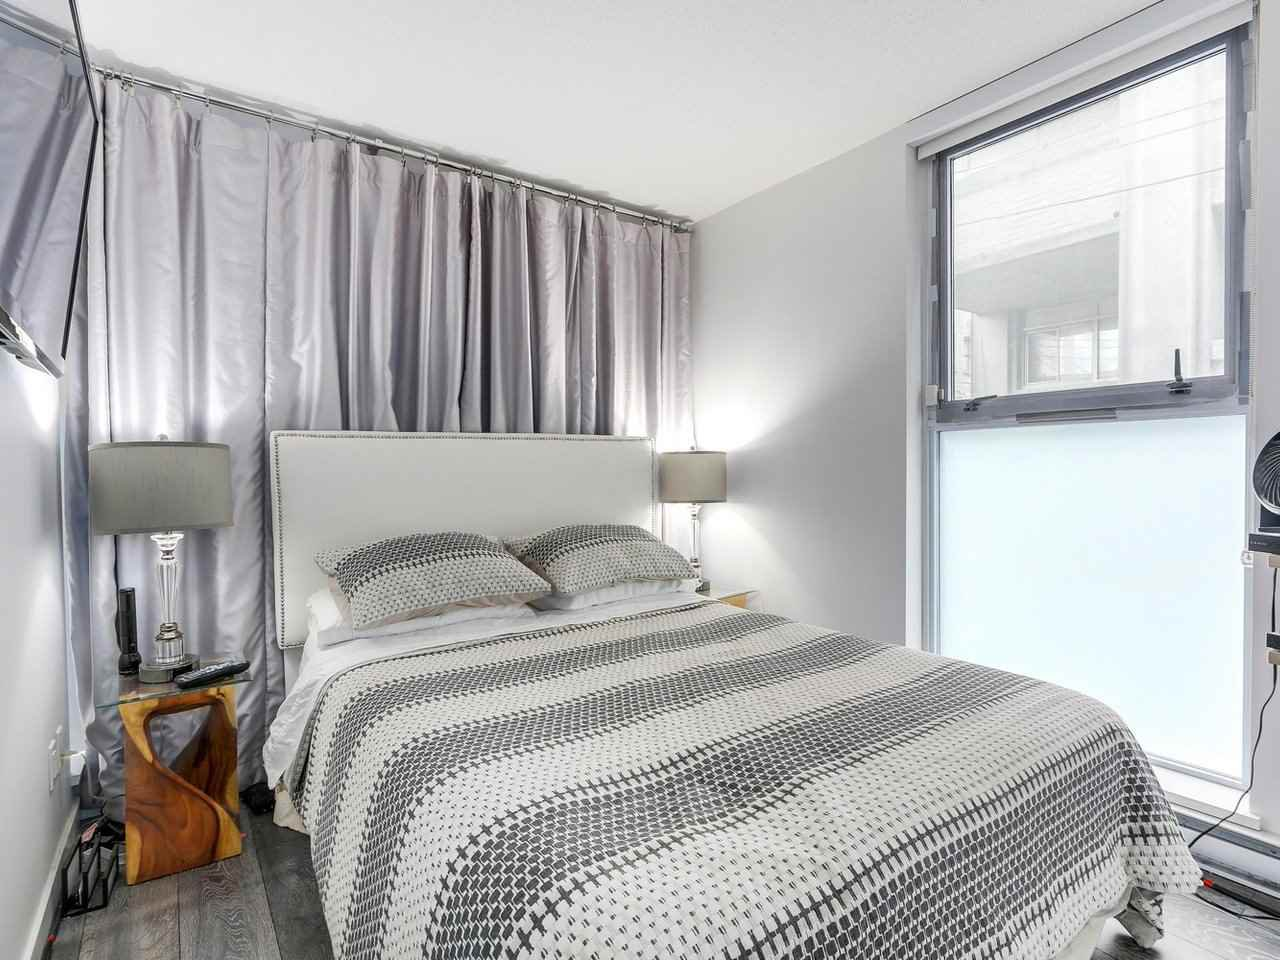 Photo 11: Photos: 217 168 POWELL Street in Vancouver: Downtown VE Condo for sale (Vancouver East)  : MLS®# R2386644